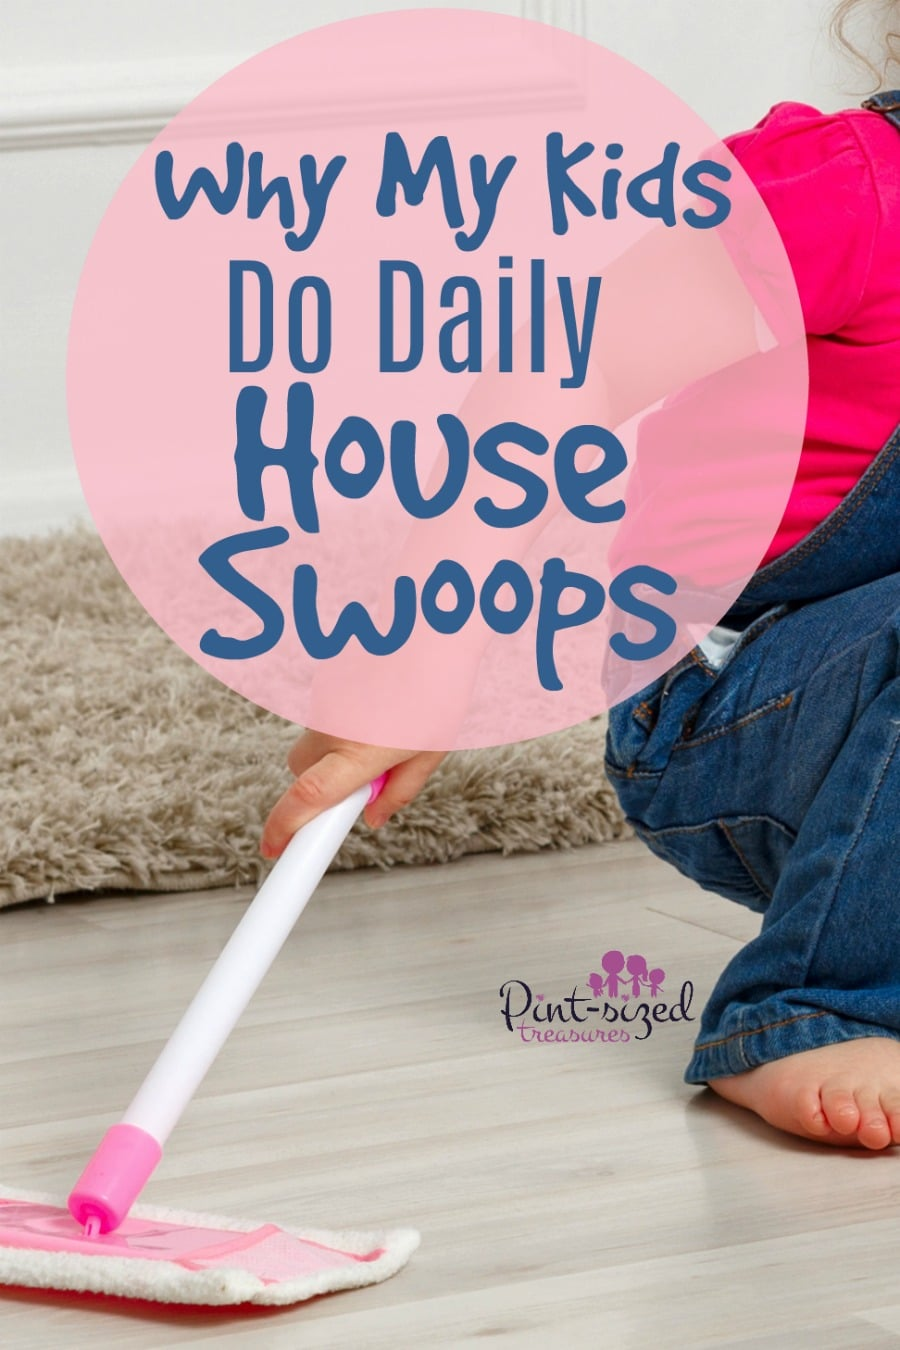 why my kids do daily house swoops